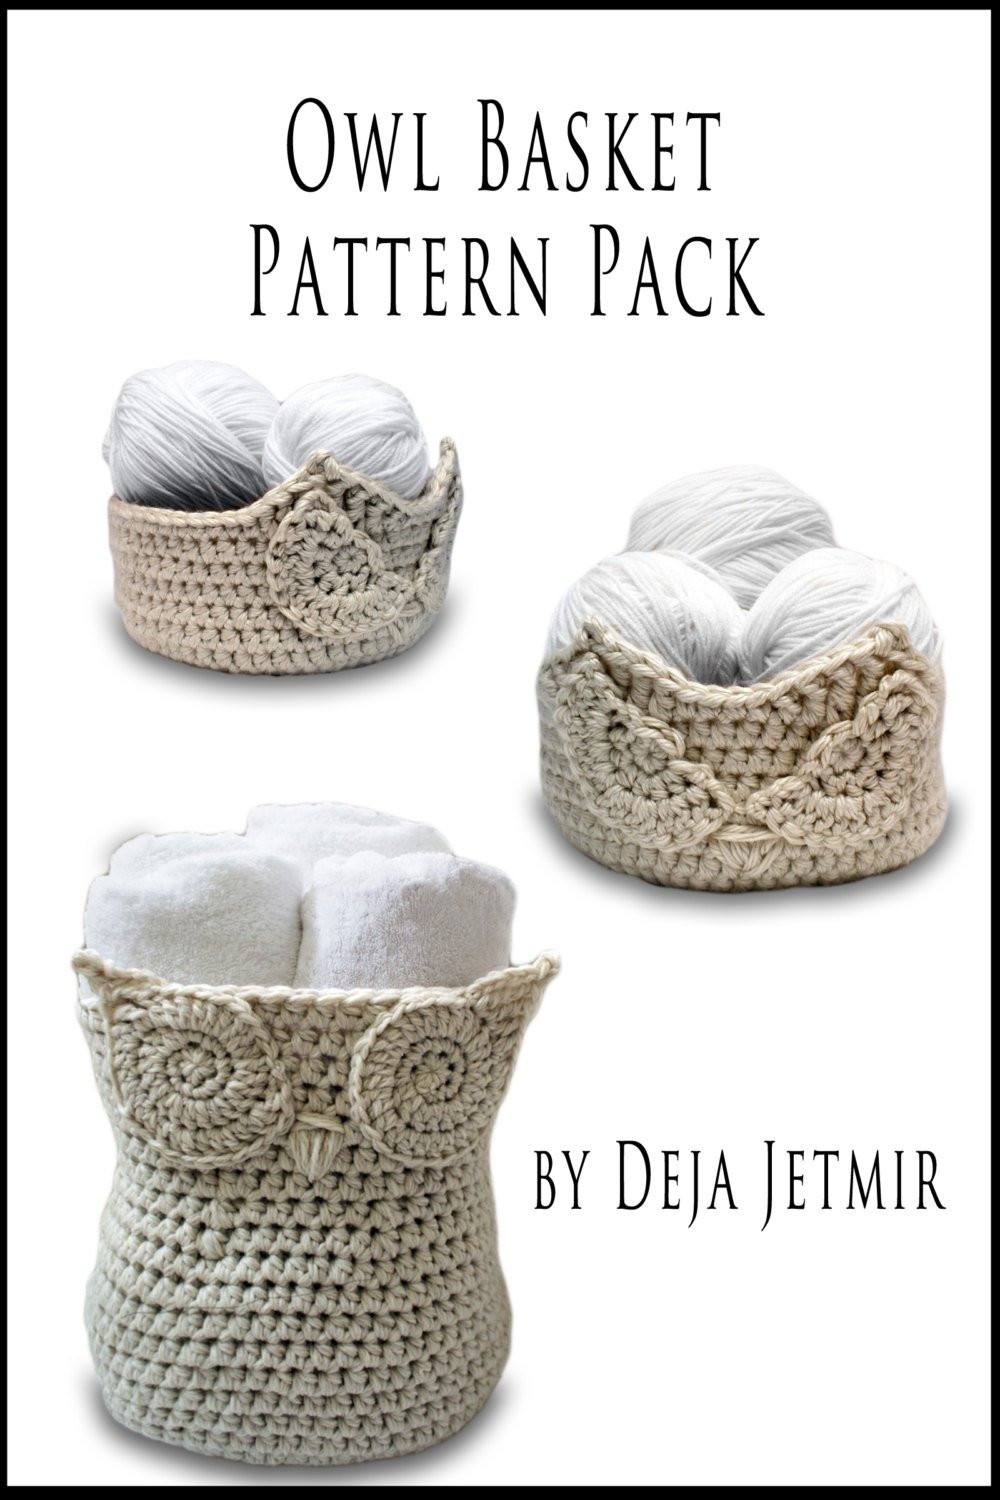 Lovely Crochet Pattern Owl Baskets Pattern Pack Crochet Crochet Owl Basket Of Brilliant 47 Photos Crochet Owl Basket